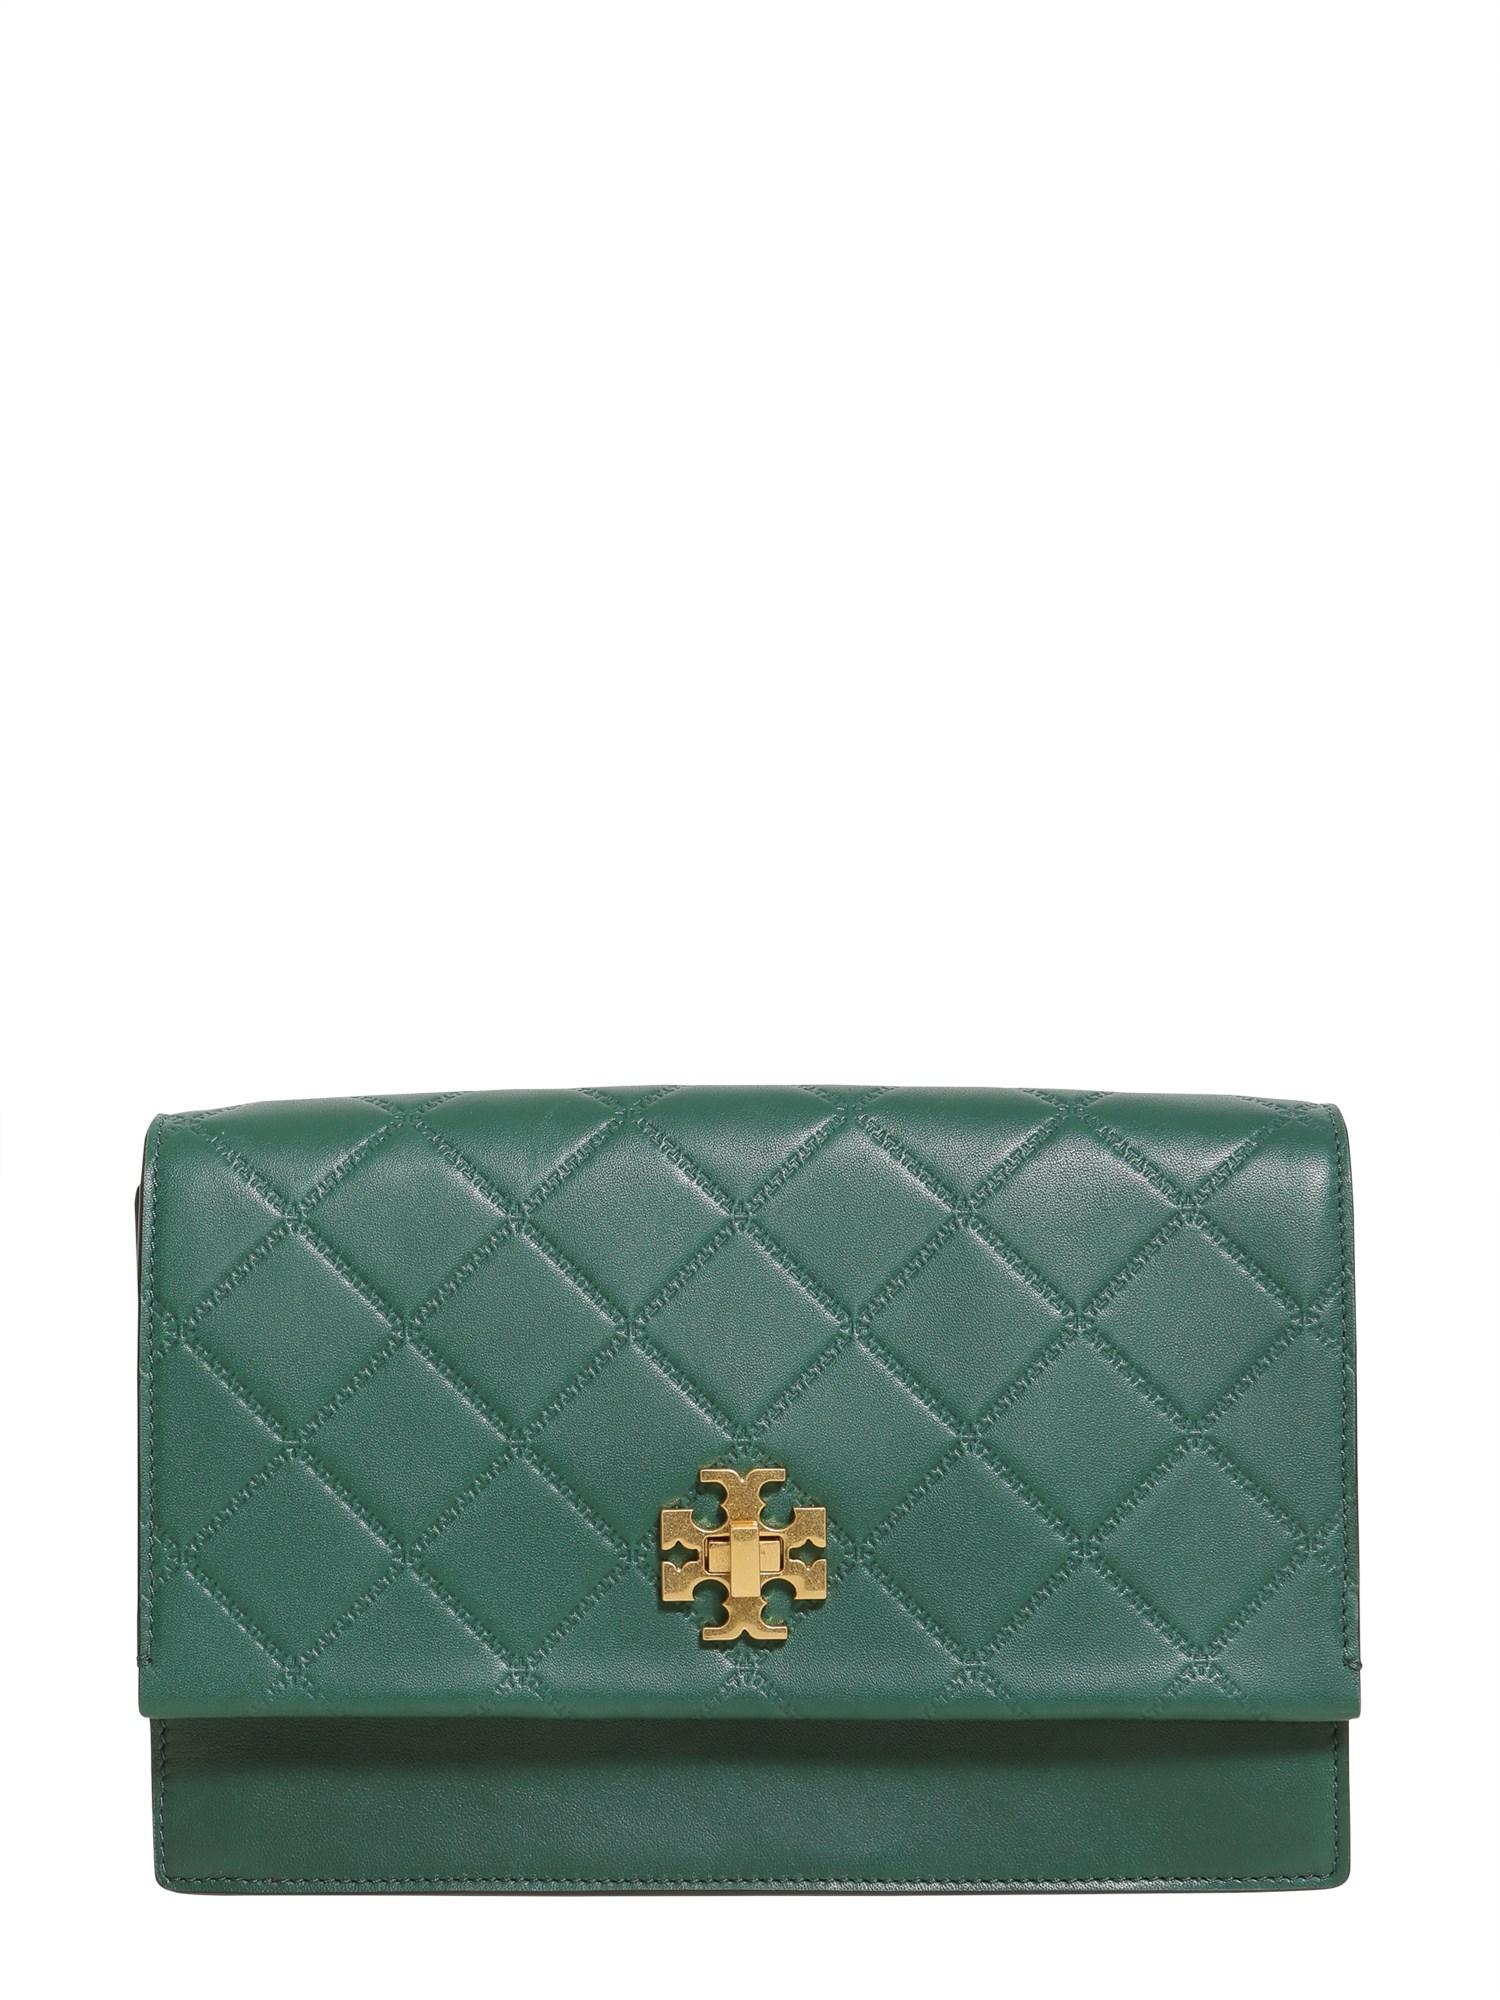 Lyst Tory Burch Georgia Quilted Leather Crossbody Bag In